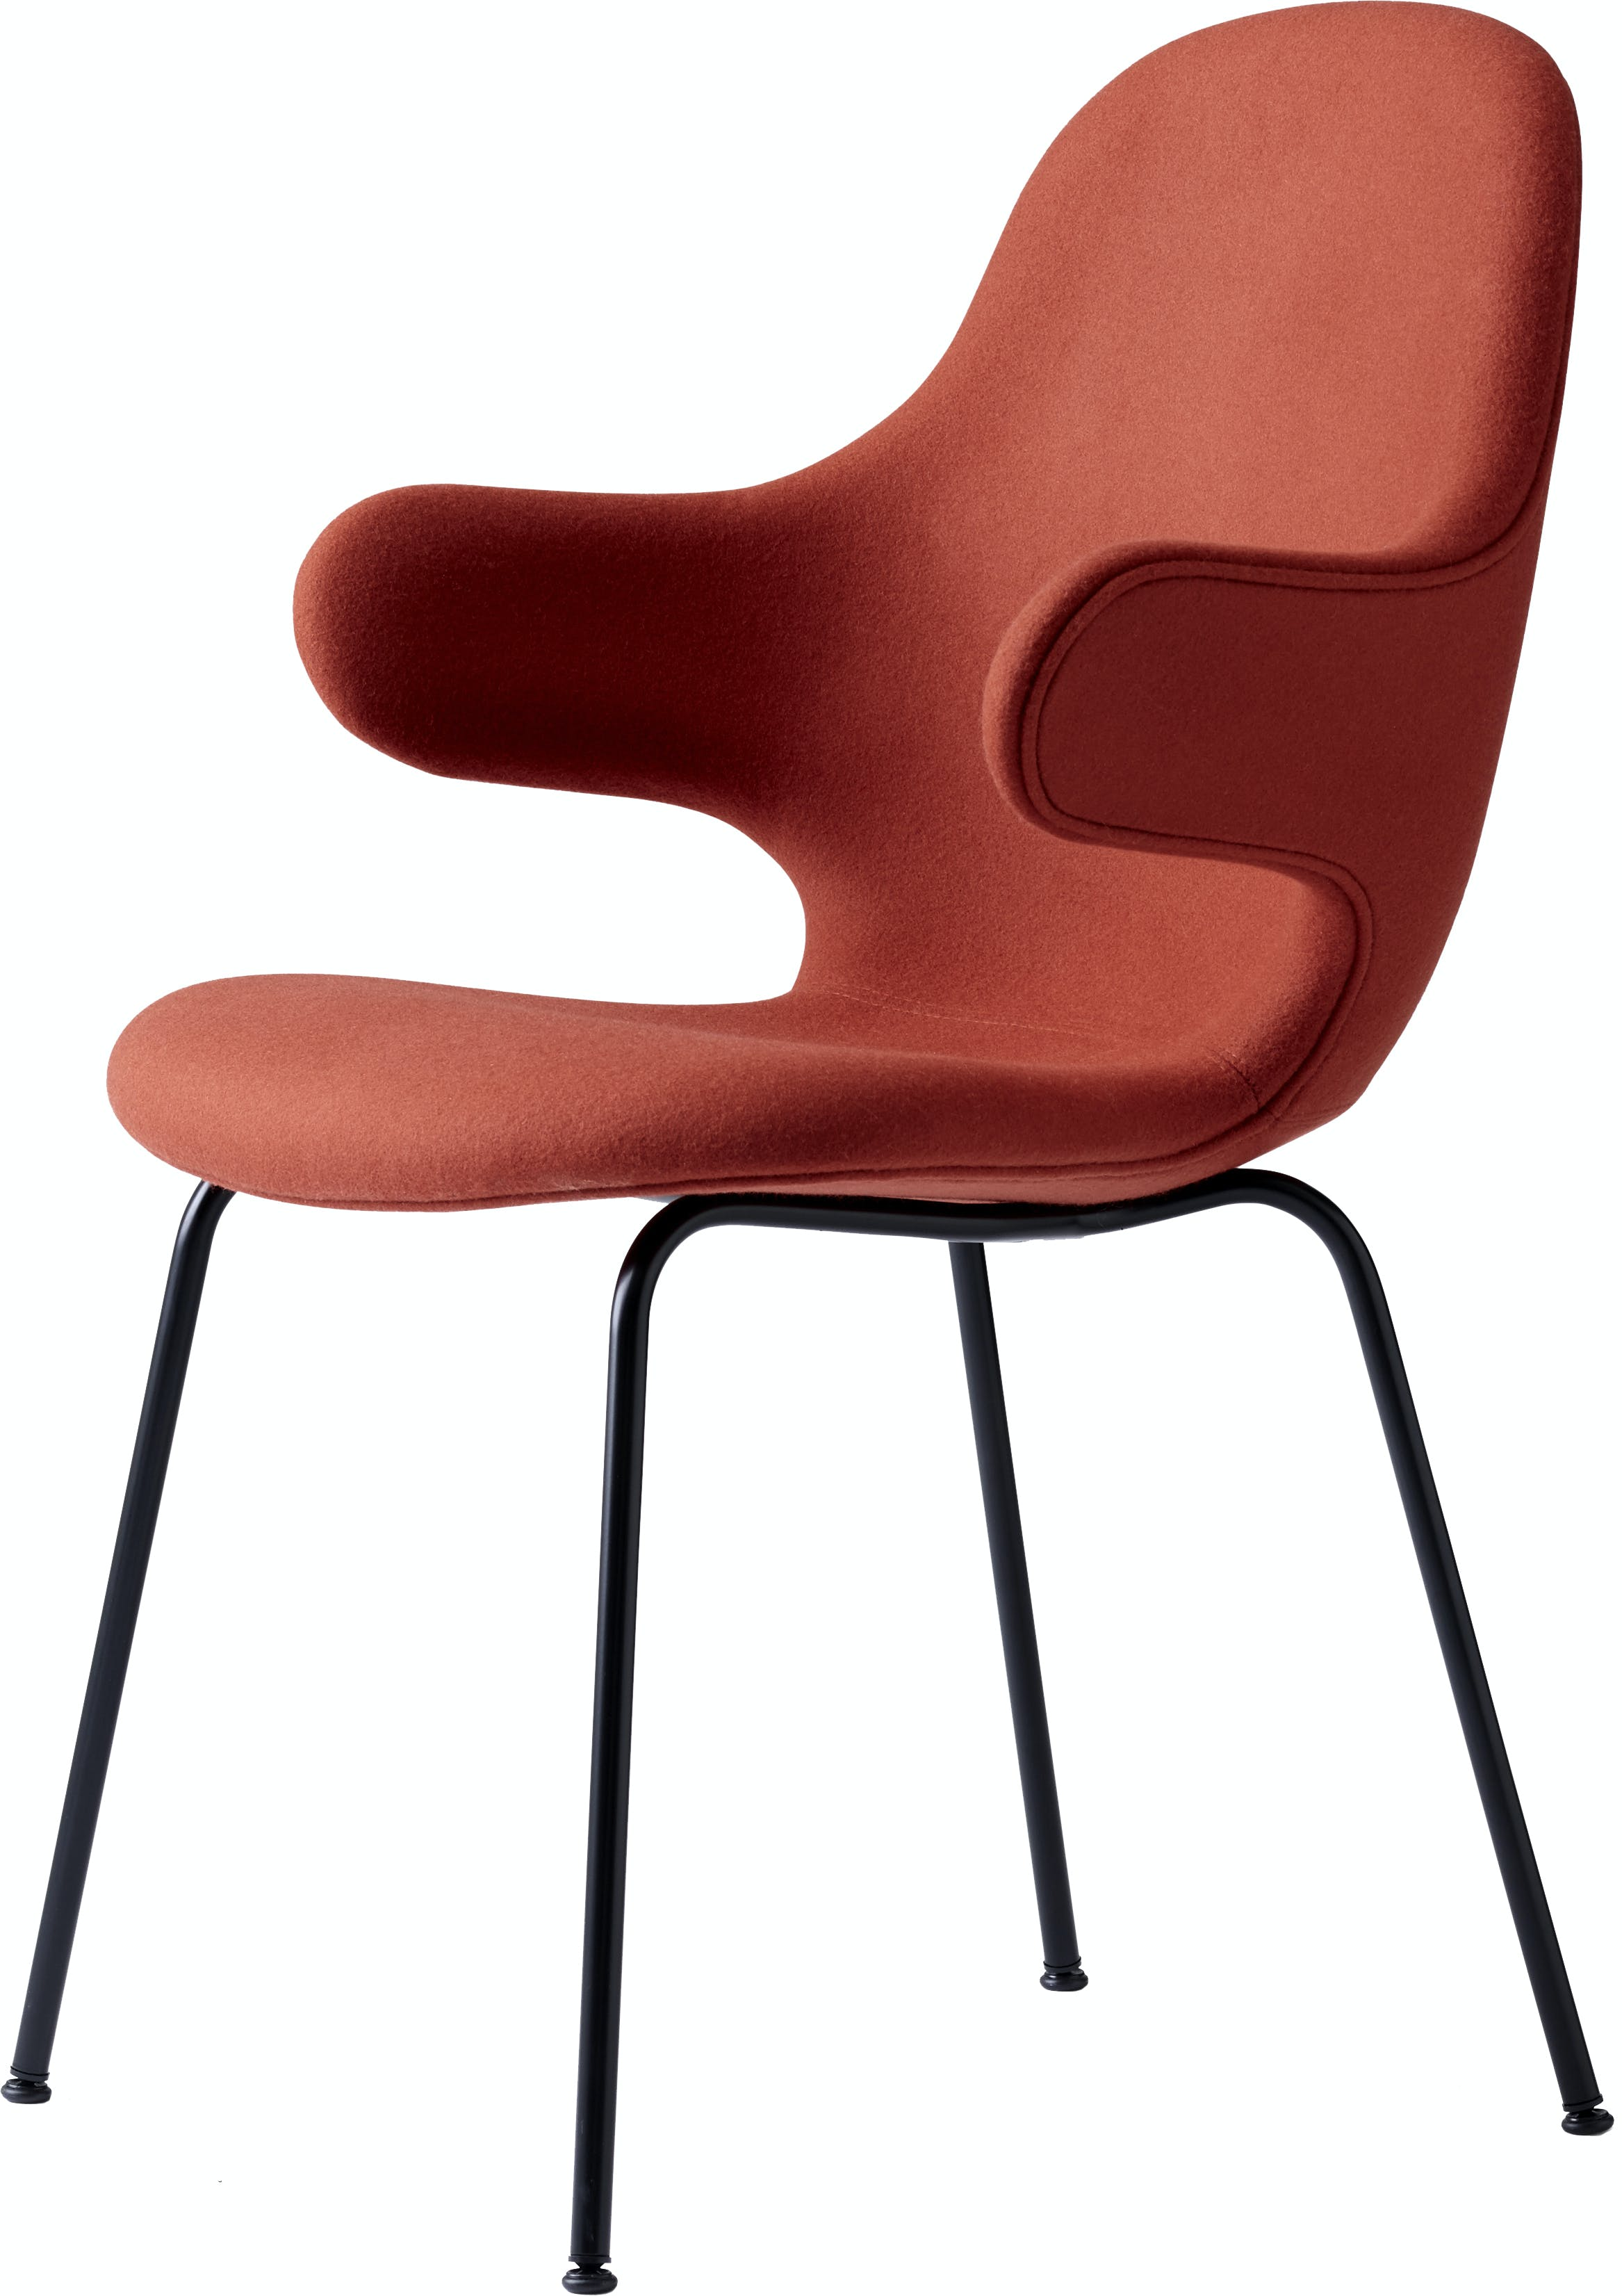 Andtradition Red Catch Chair Thumbnail